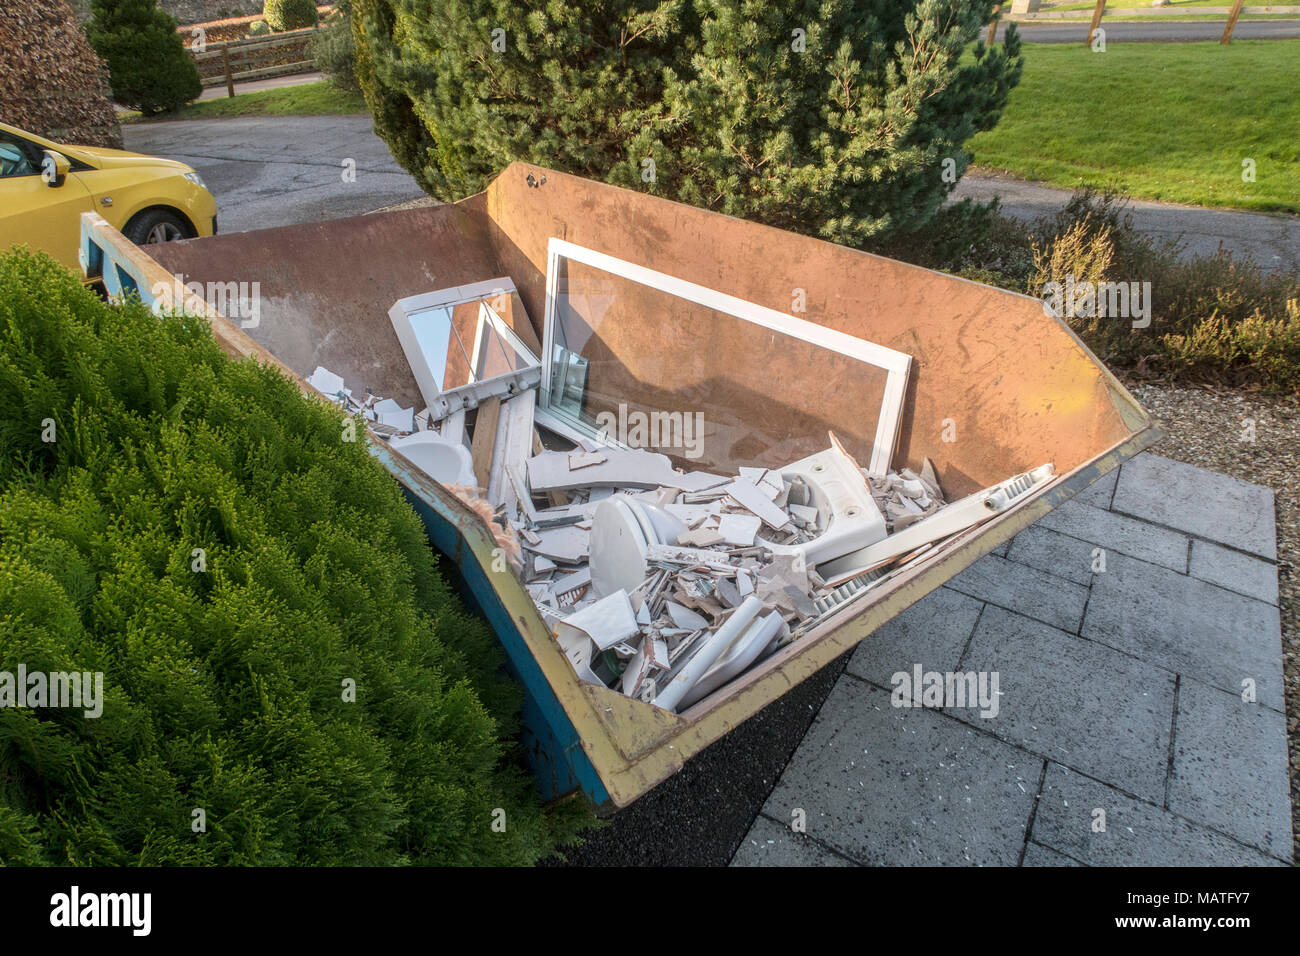 Rubbish skip on the driveway of a house, full of rubble from renovating a bathroom - Stock Image